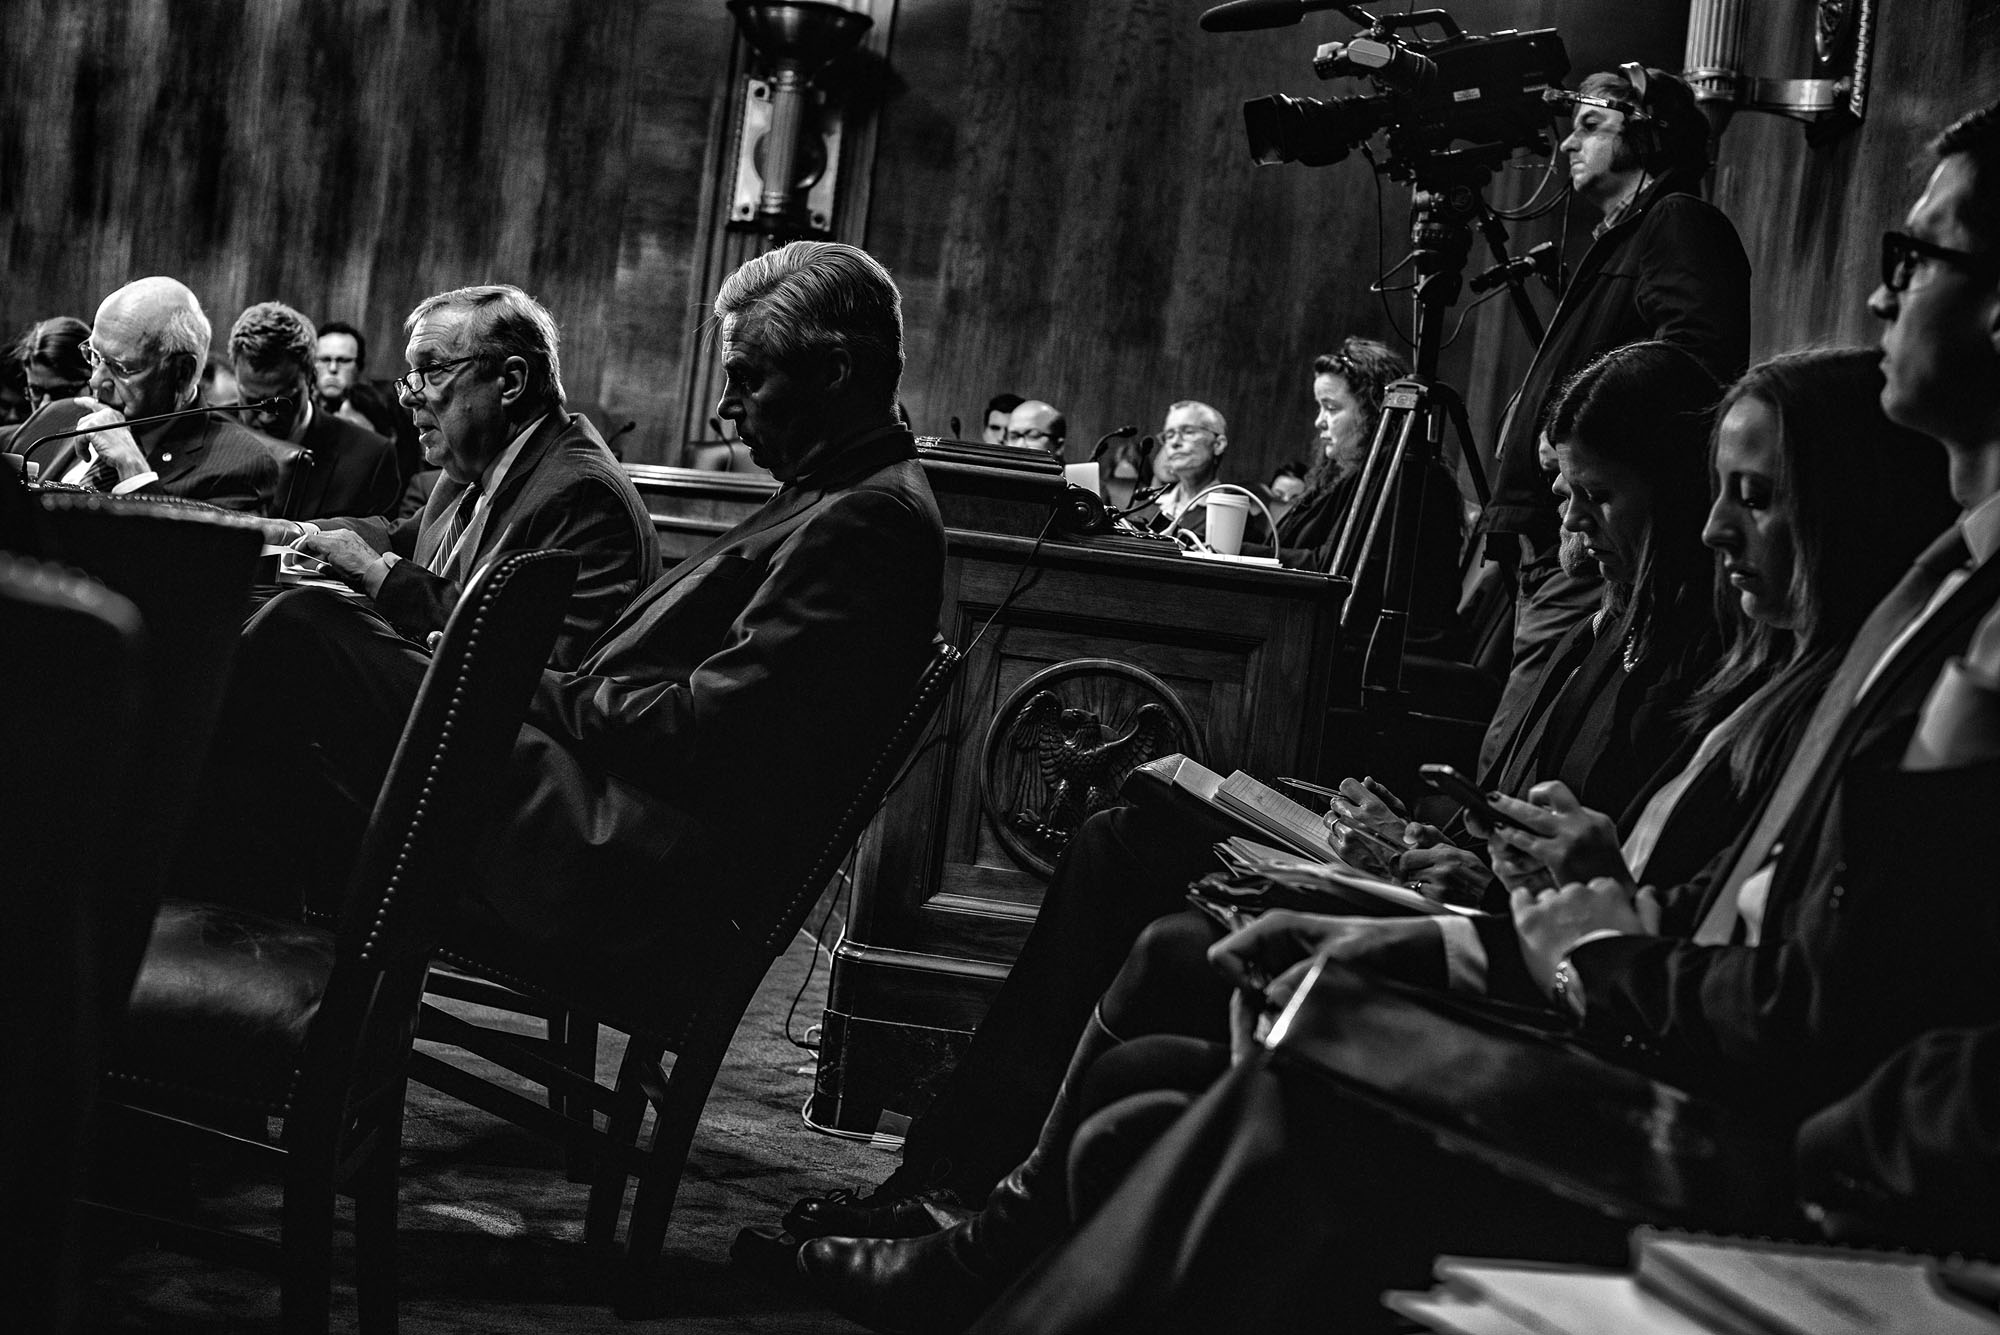 Senator Dick Durbin (D-IL) testifies in opposition to the nomination of Sen. Jeff Sessions for Attorney General of the United States on January 31, 2017.